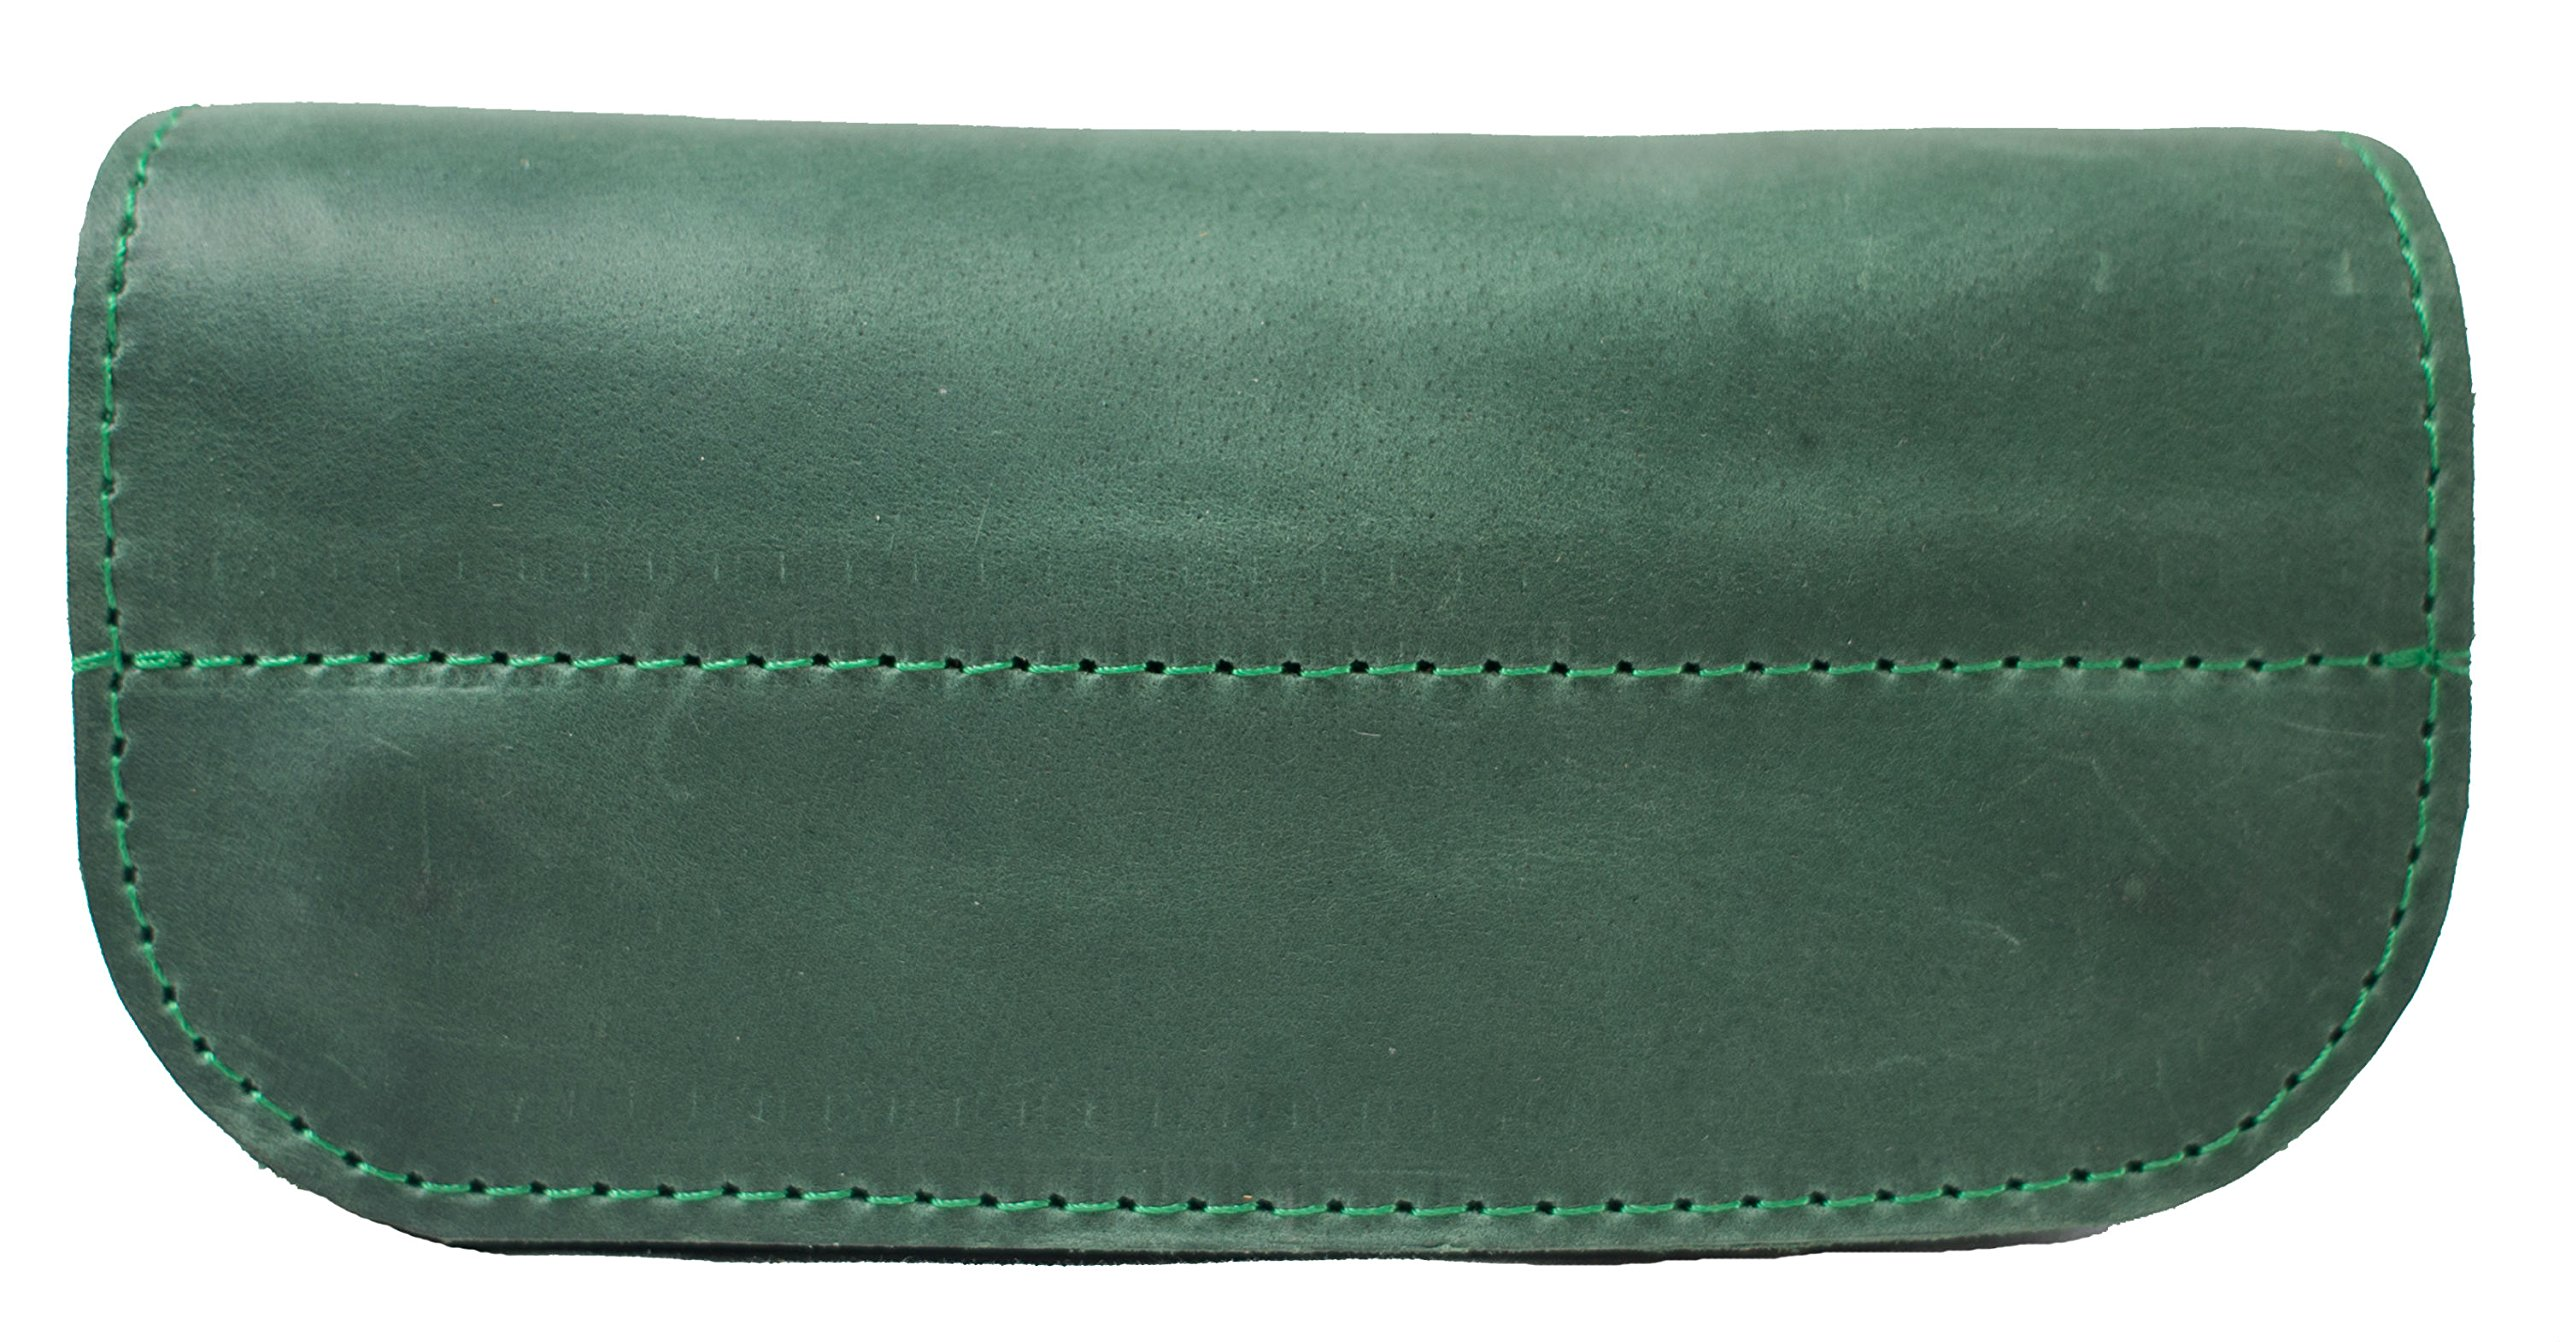 InCarne Leather eyeglasses case soft leather eyeglass holder soft glasses pouch (02001) (Green)